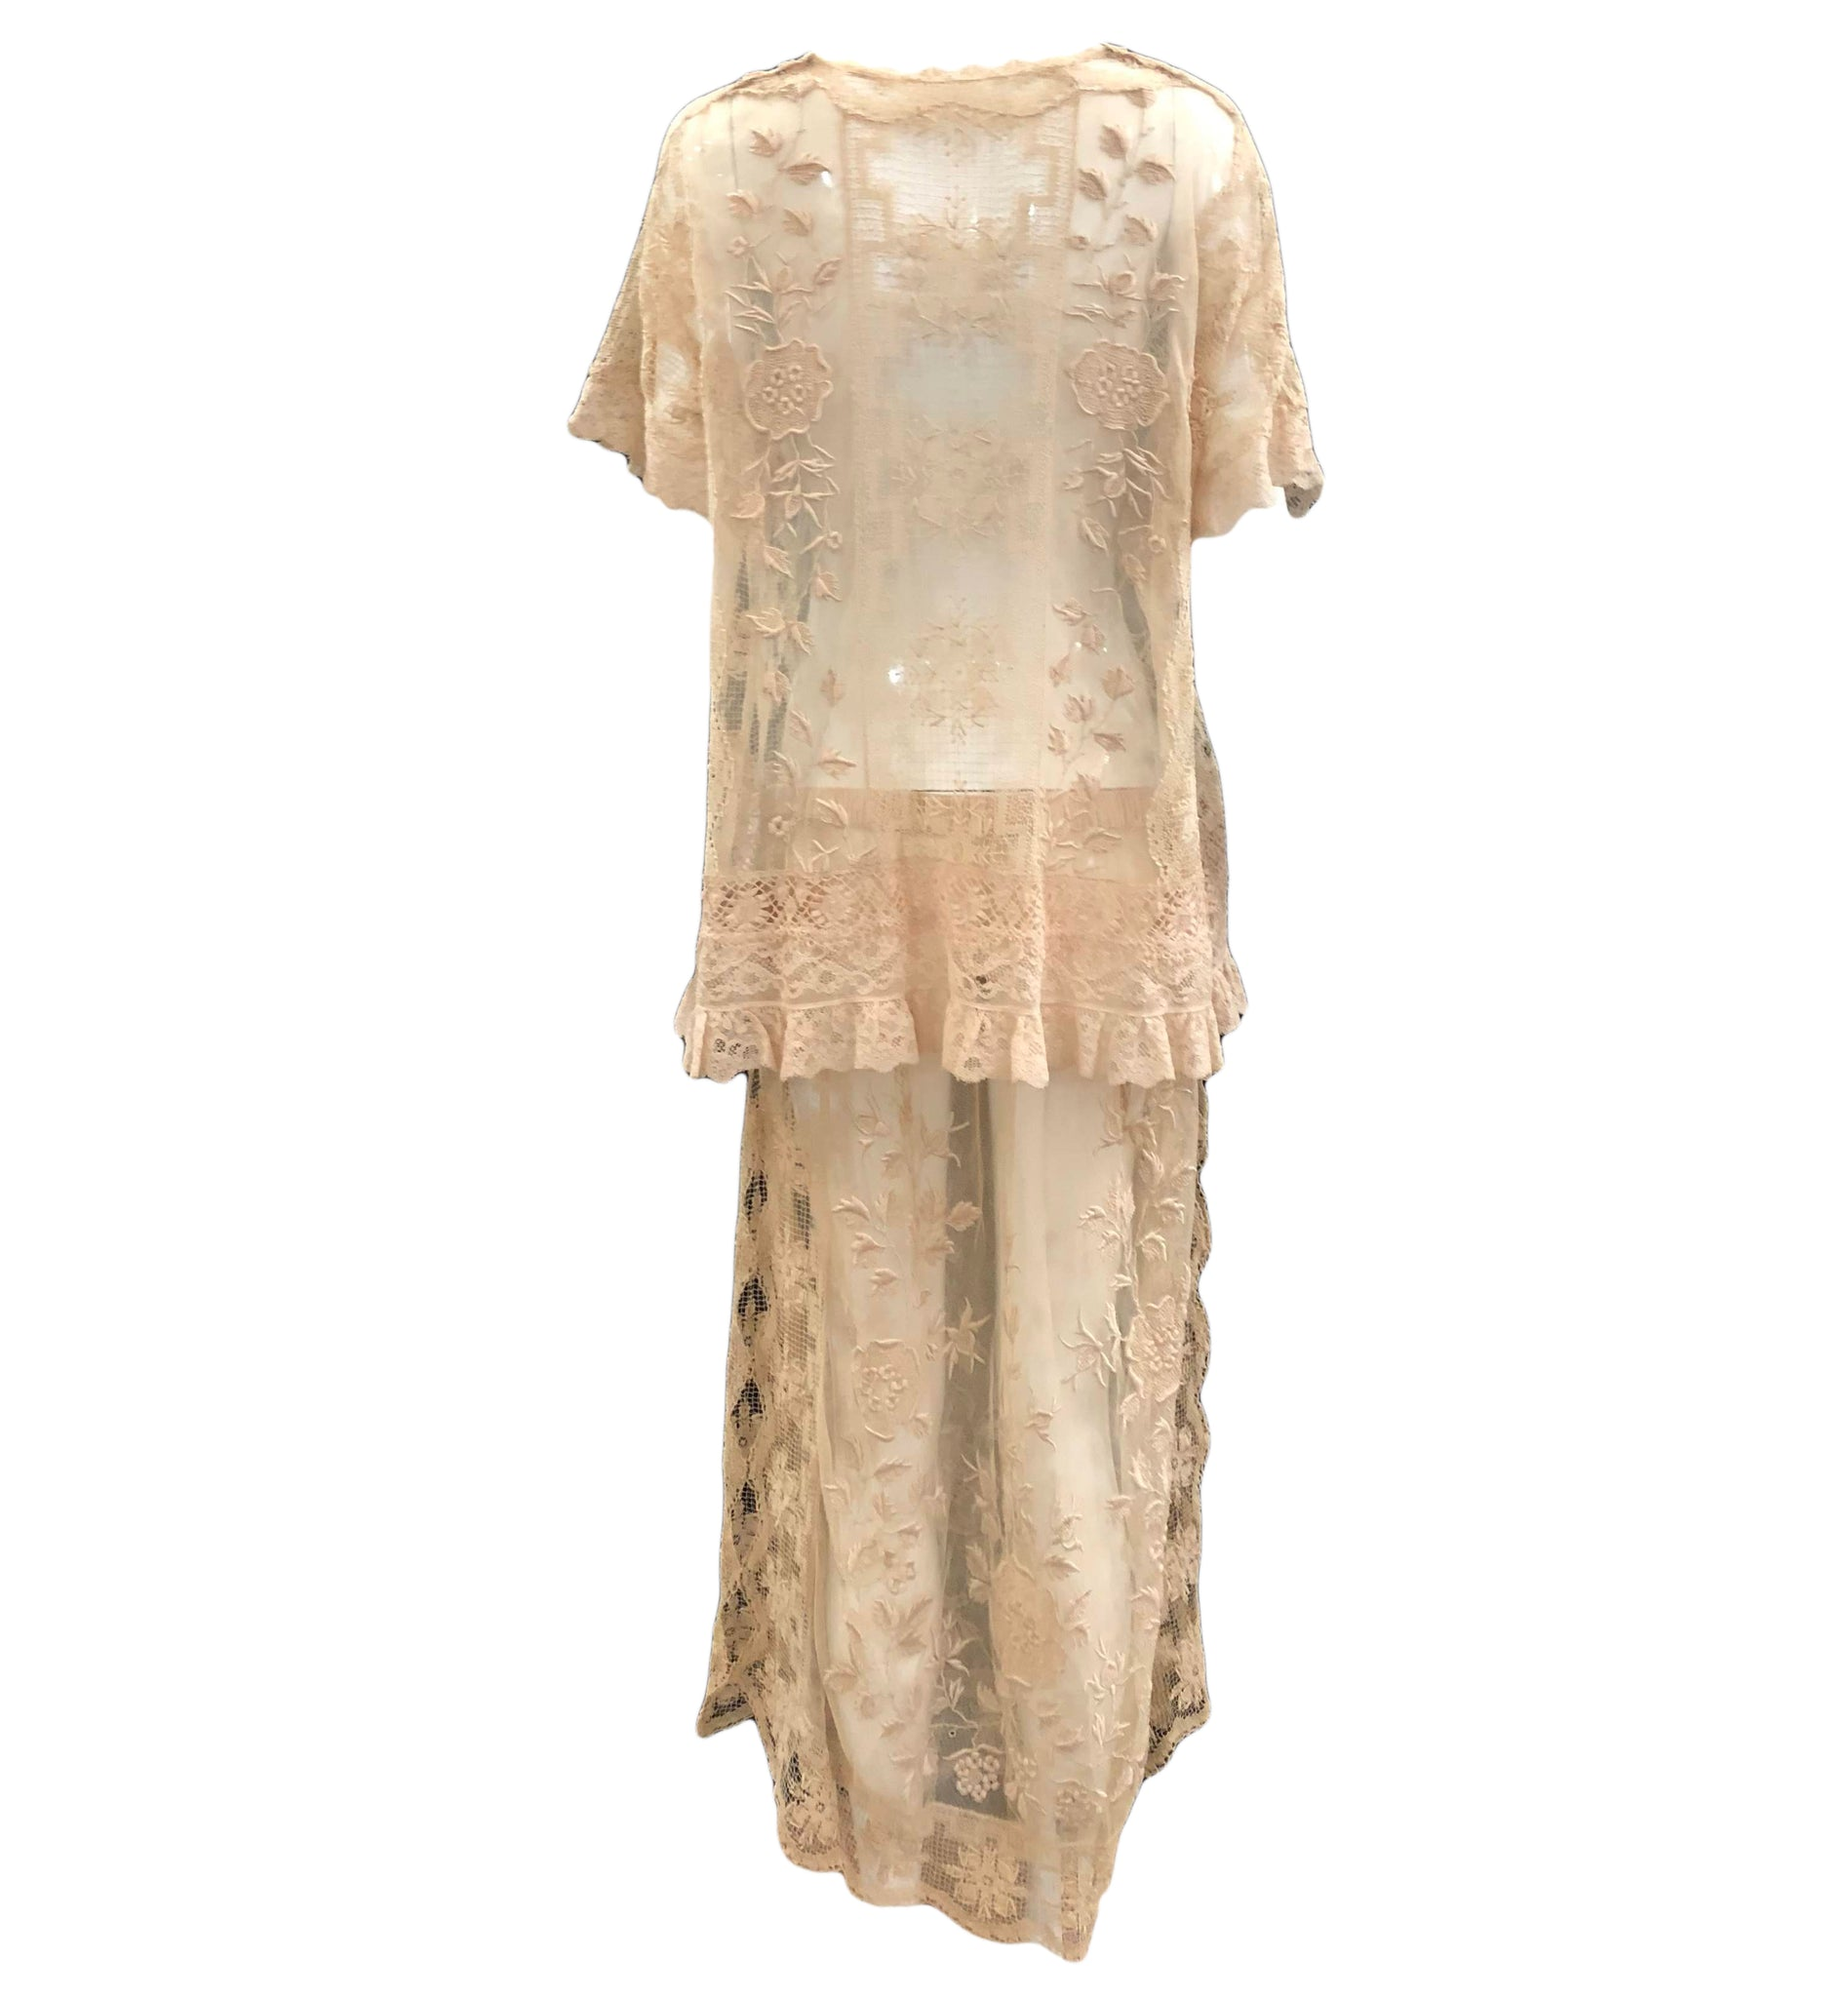 1920s Two Piece Lace and Crochet Ensemble  2 of 7